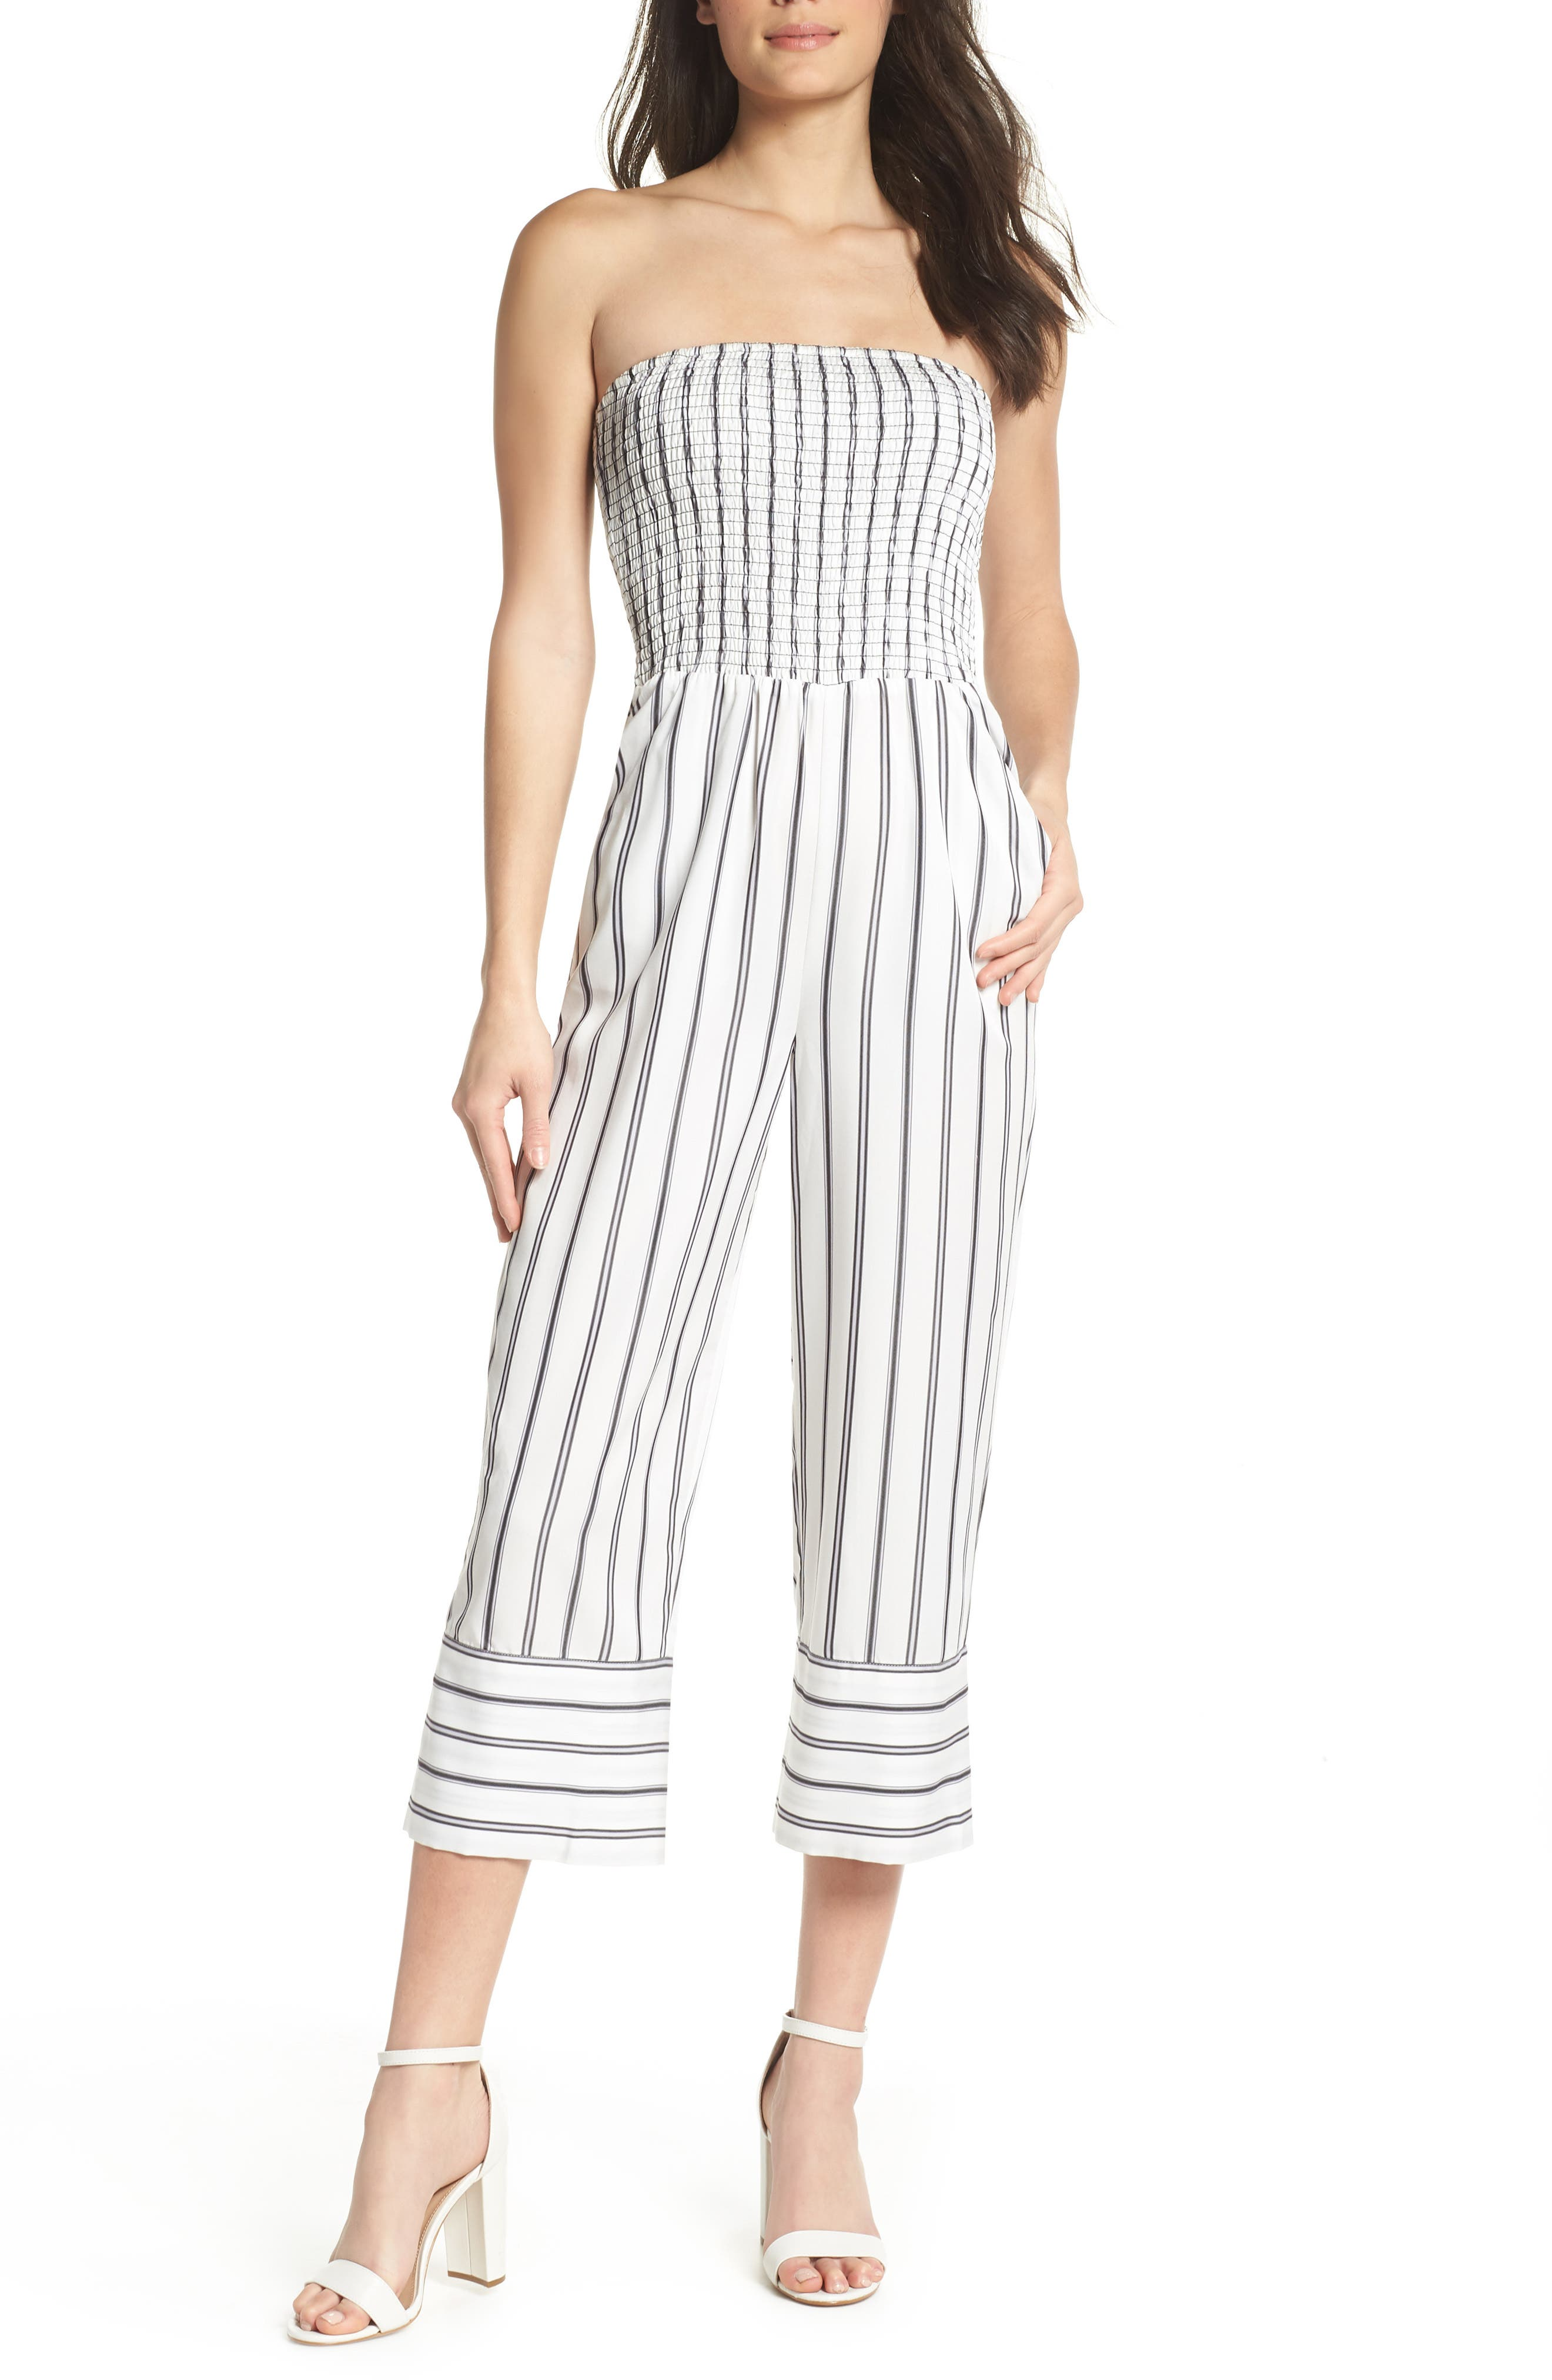 Get in the Grove Stripe Strapless Jumpsuit,                             Main thumbnail 1, color,                             Black/ White Uneven Stripe